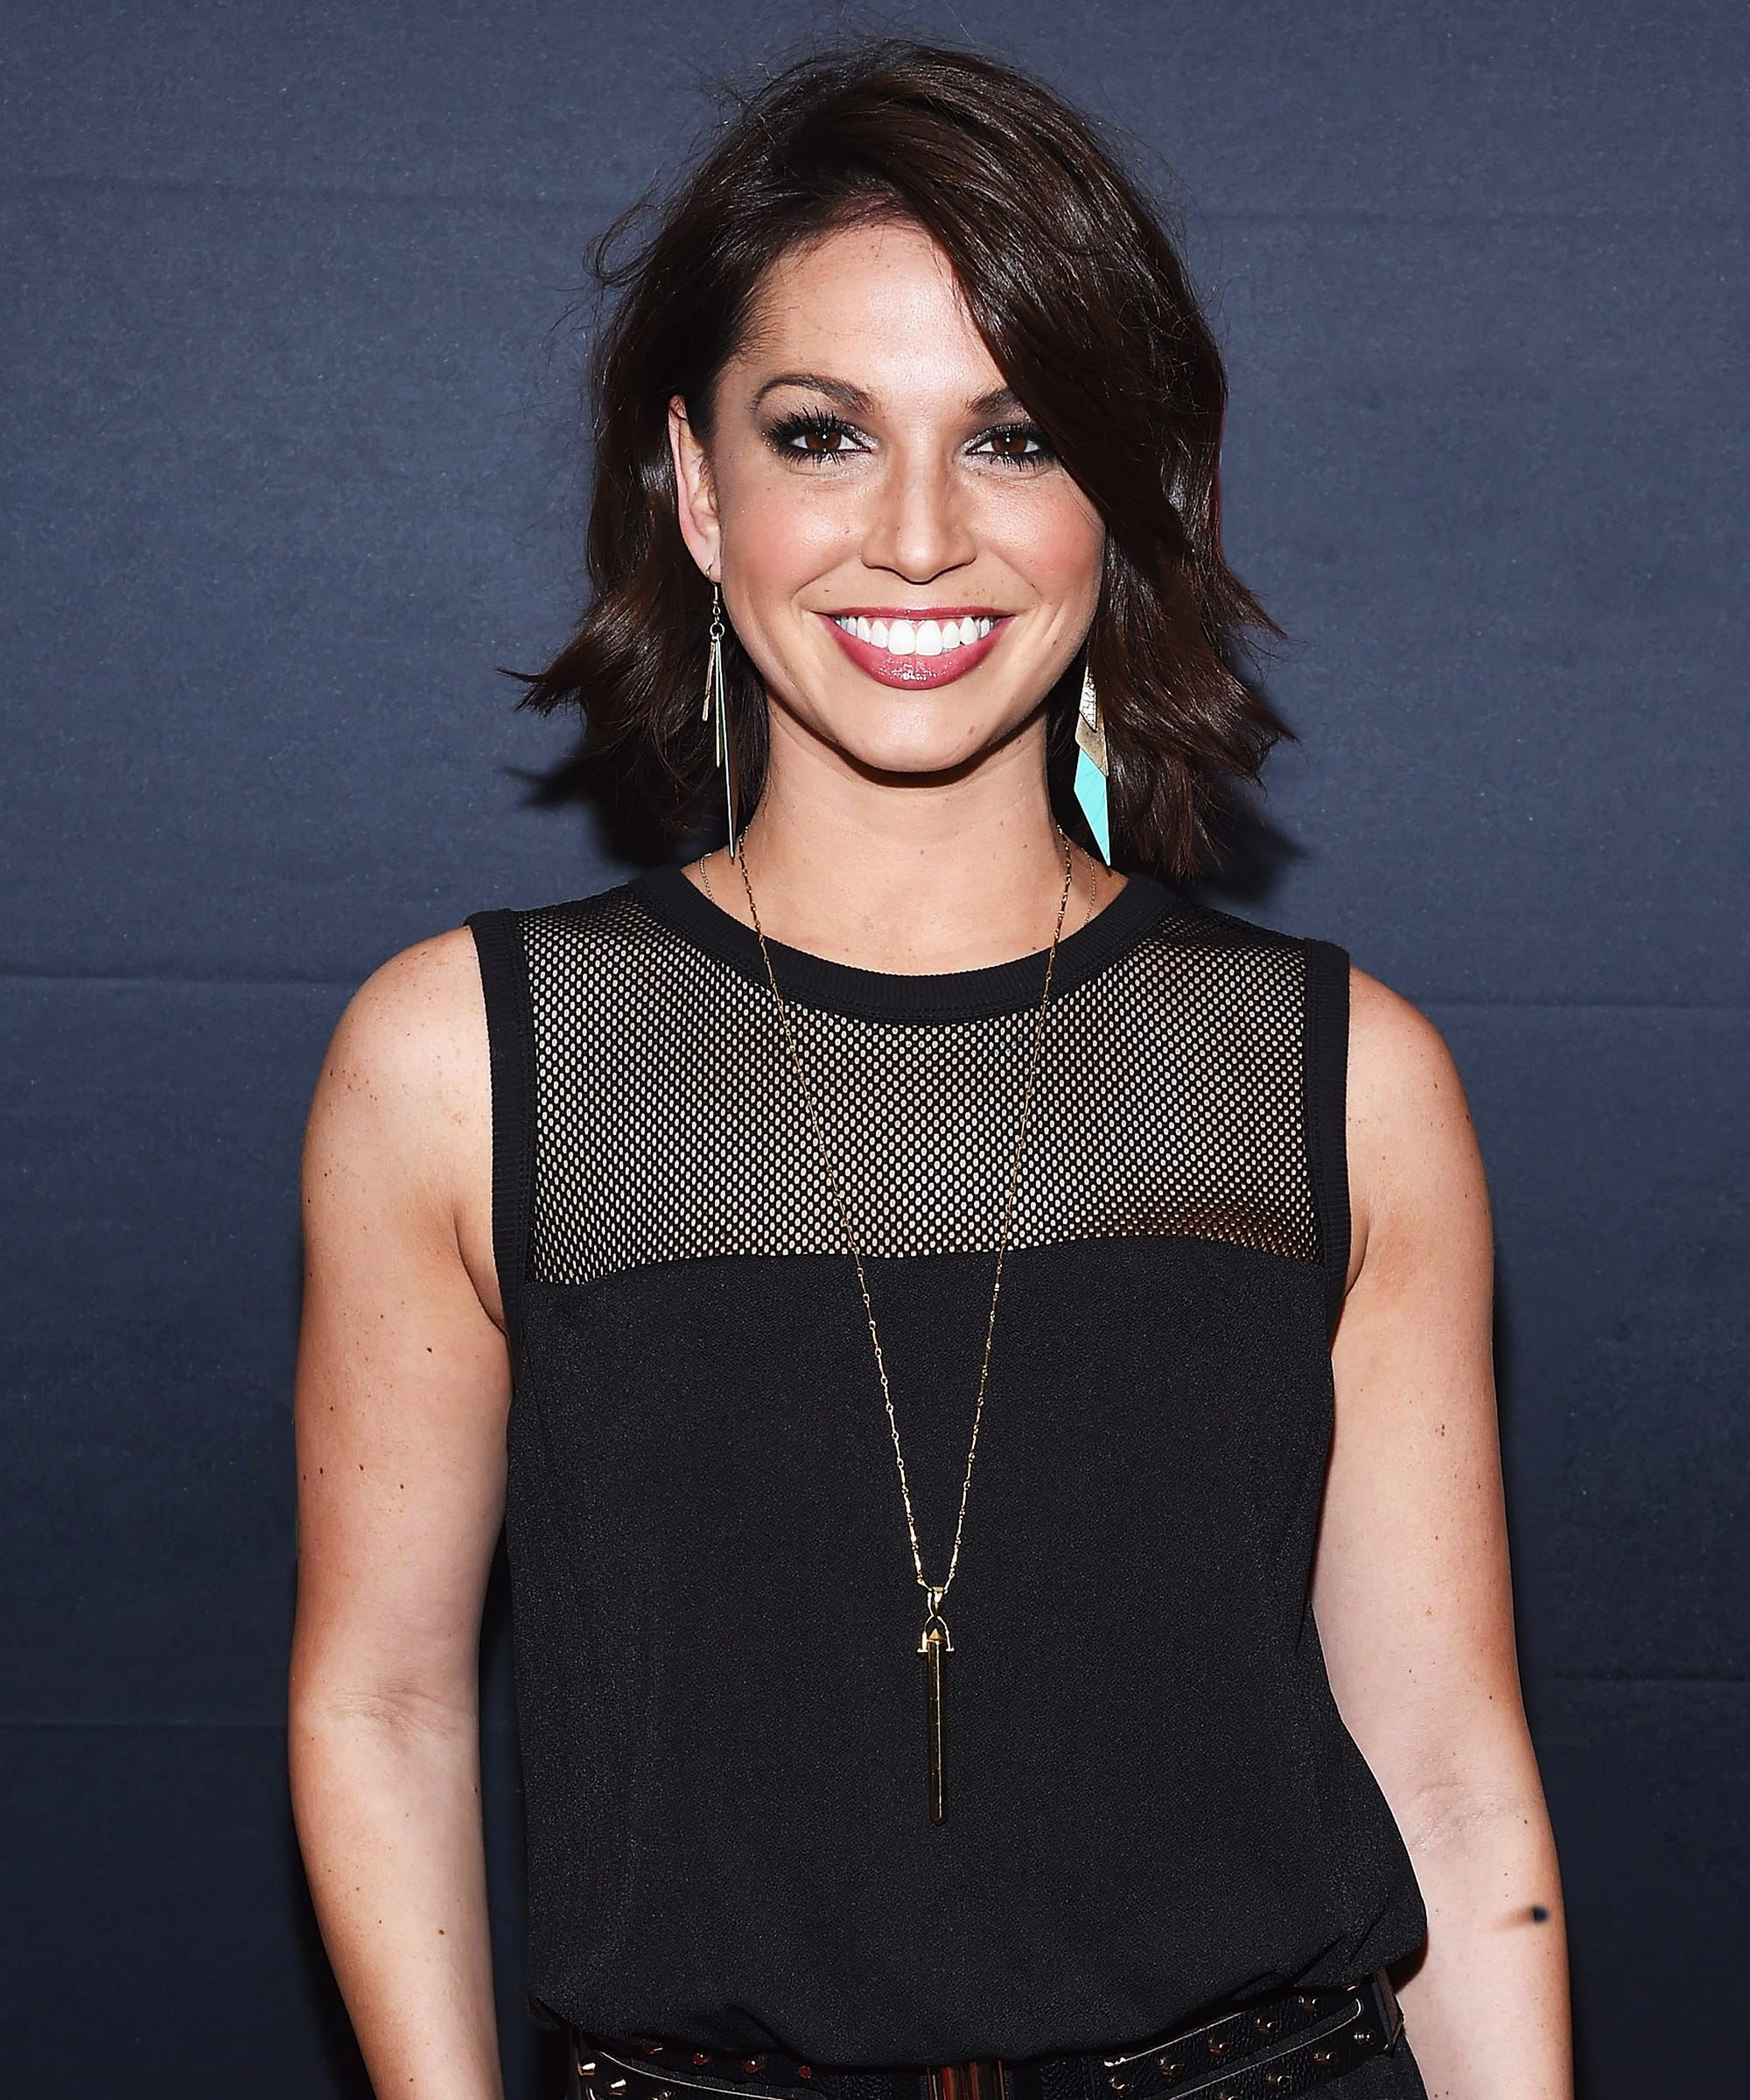 Latest Pictures Melissa Rycroft Sick After Dominican Republic Trip